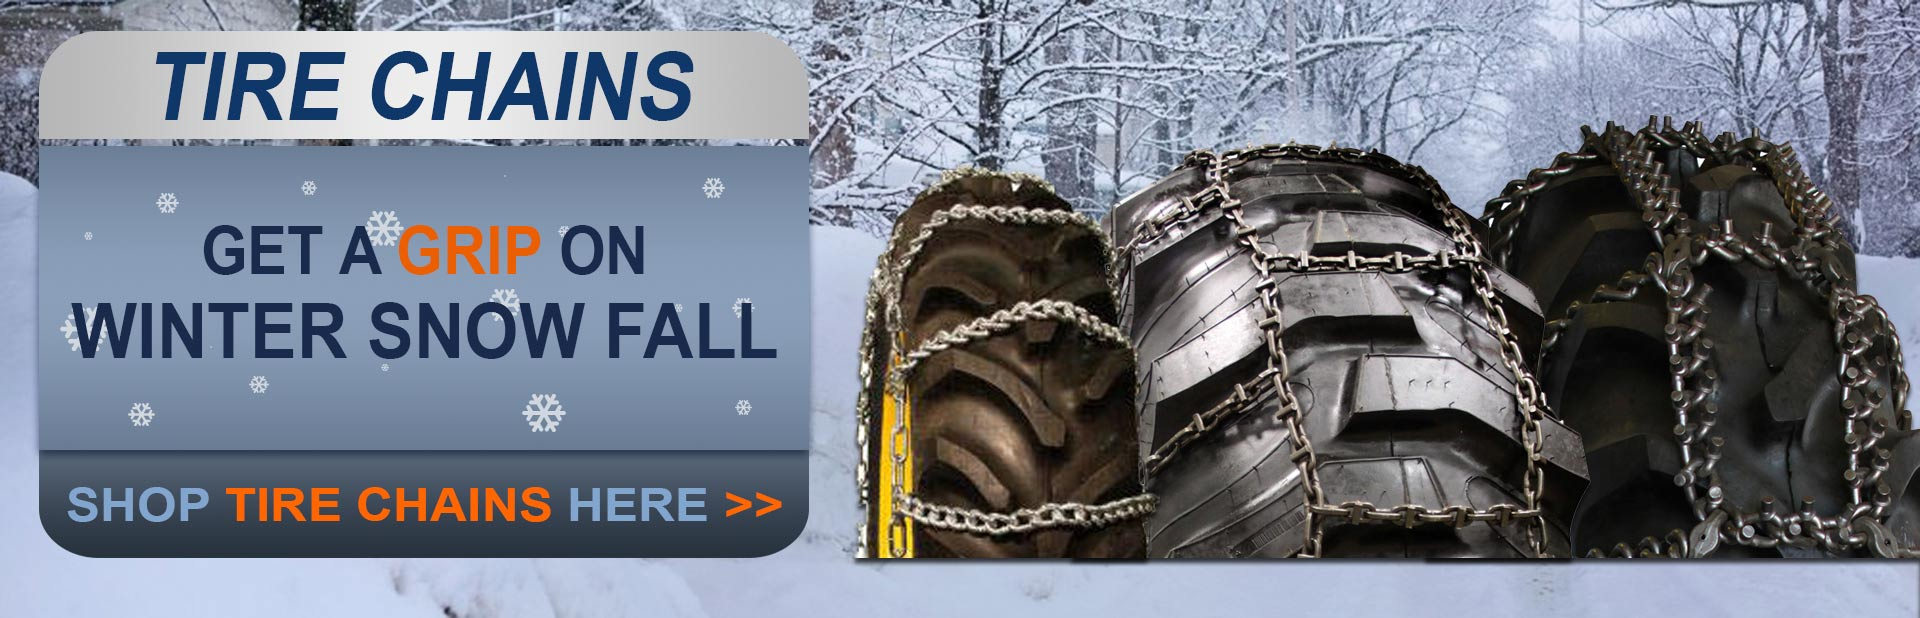 Shop Tire Chains Here!